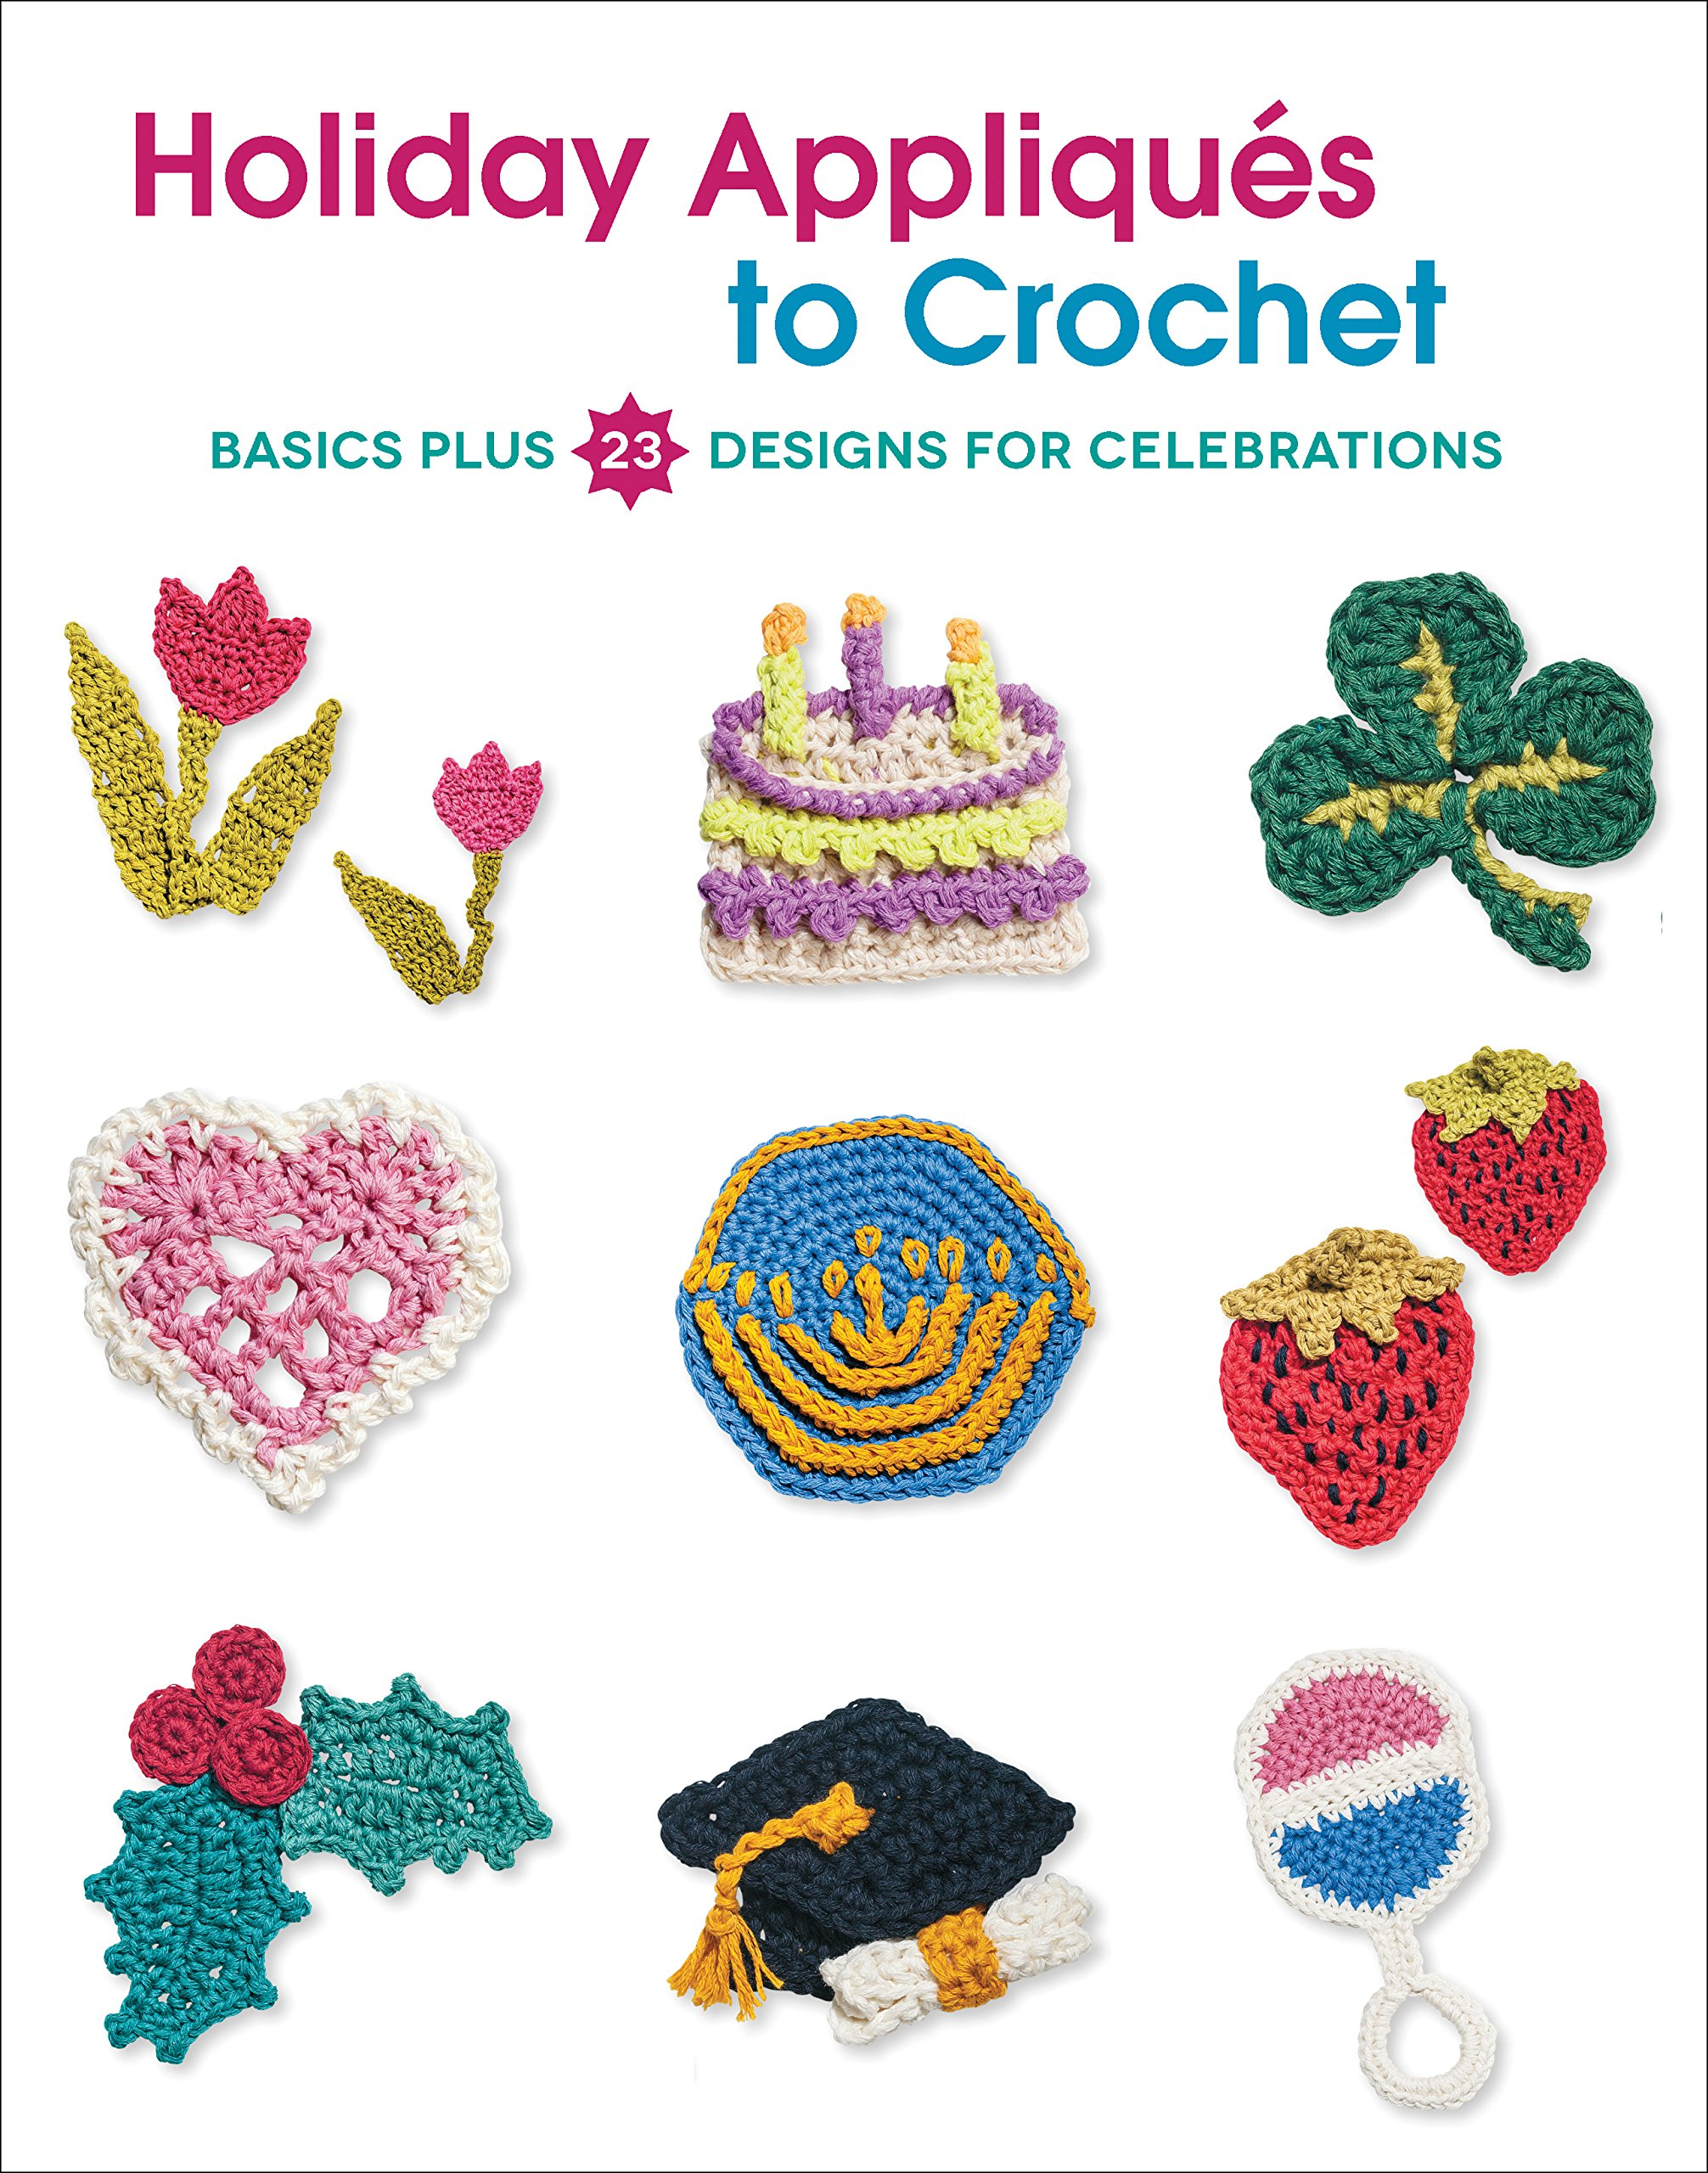 Holiday Appliques to Crochet: Basics Plus 23 Designs for Celebrations